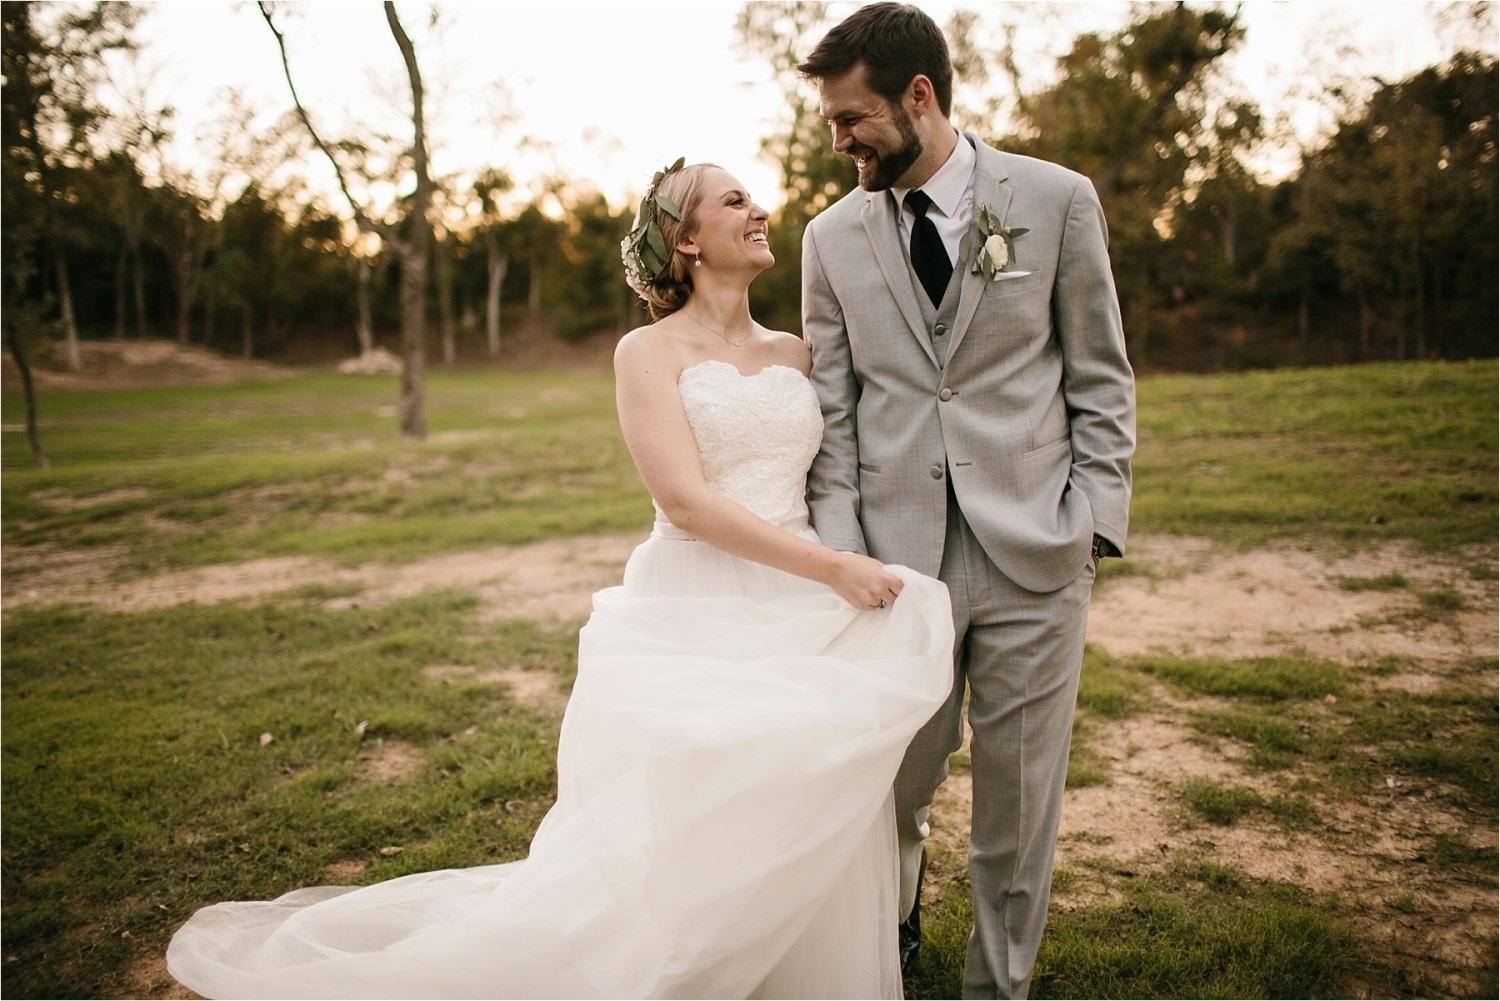 brad-lara-__-a-grey-and-blush-pink-intimate-wedding-at-hidden-waters-event-center-in-waxahachie-tx-by-north-texas-wedding-photographer-rachel-meagan-photography-_-074